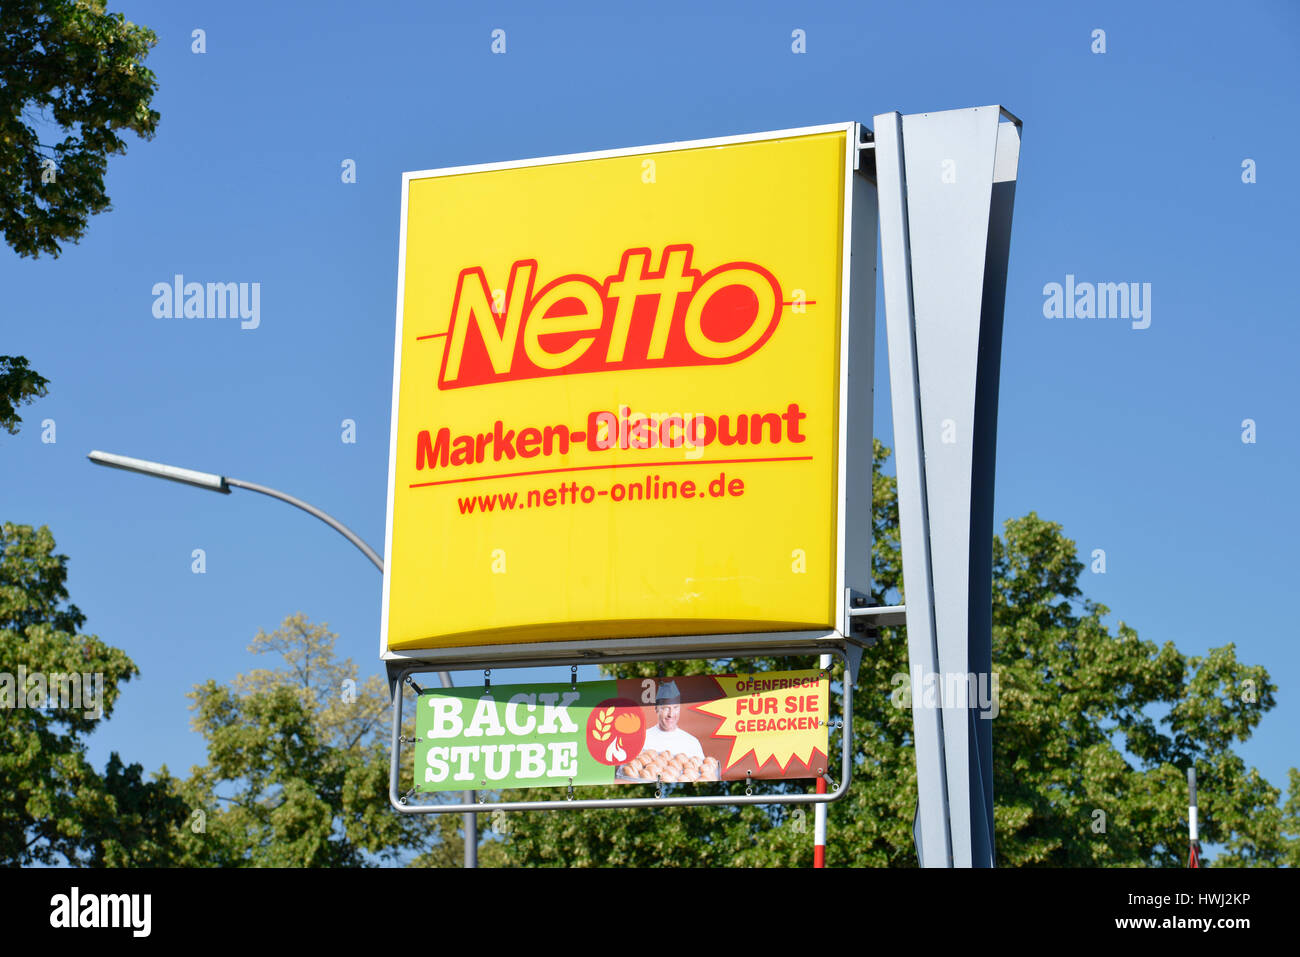 netto stock photos netto stock images alamy. Black Bedroom Furniture Sets. Home Design Ideas